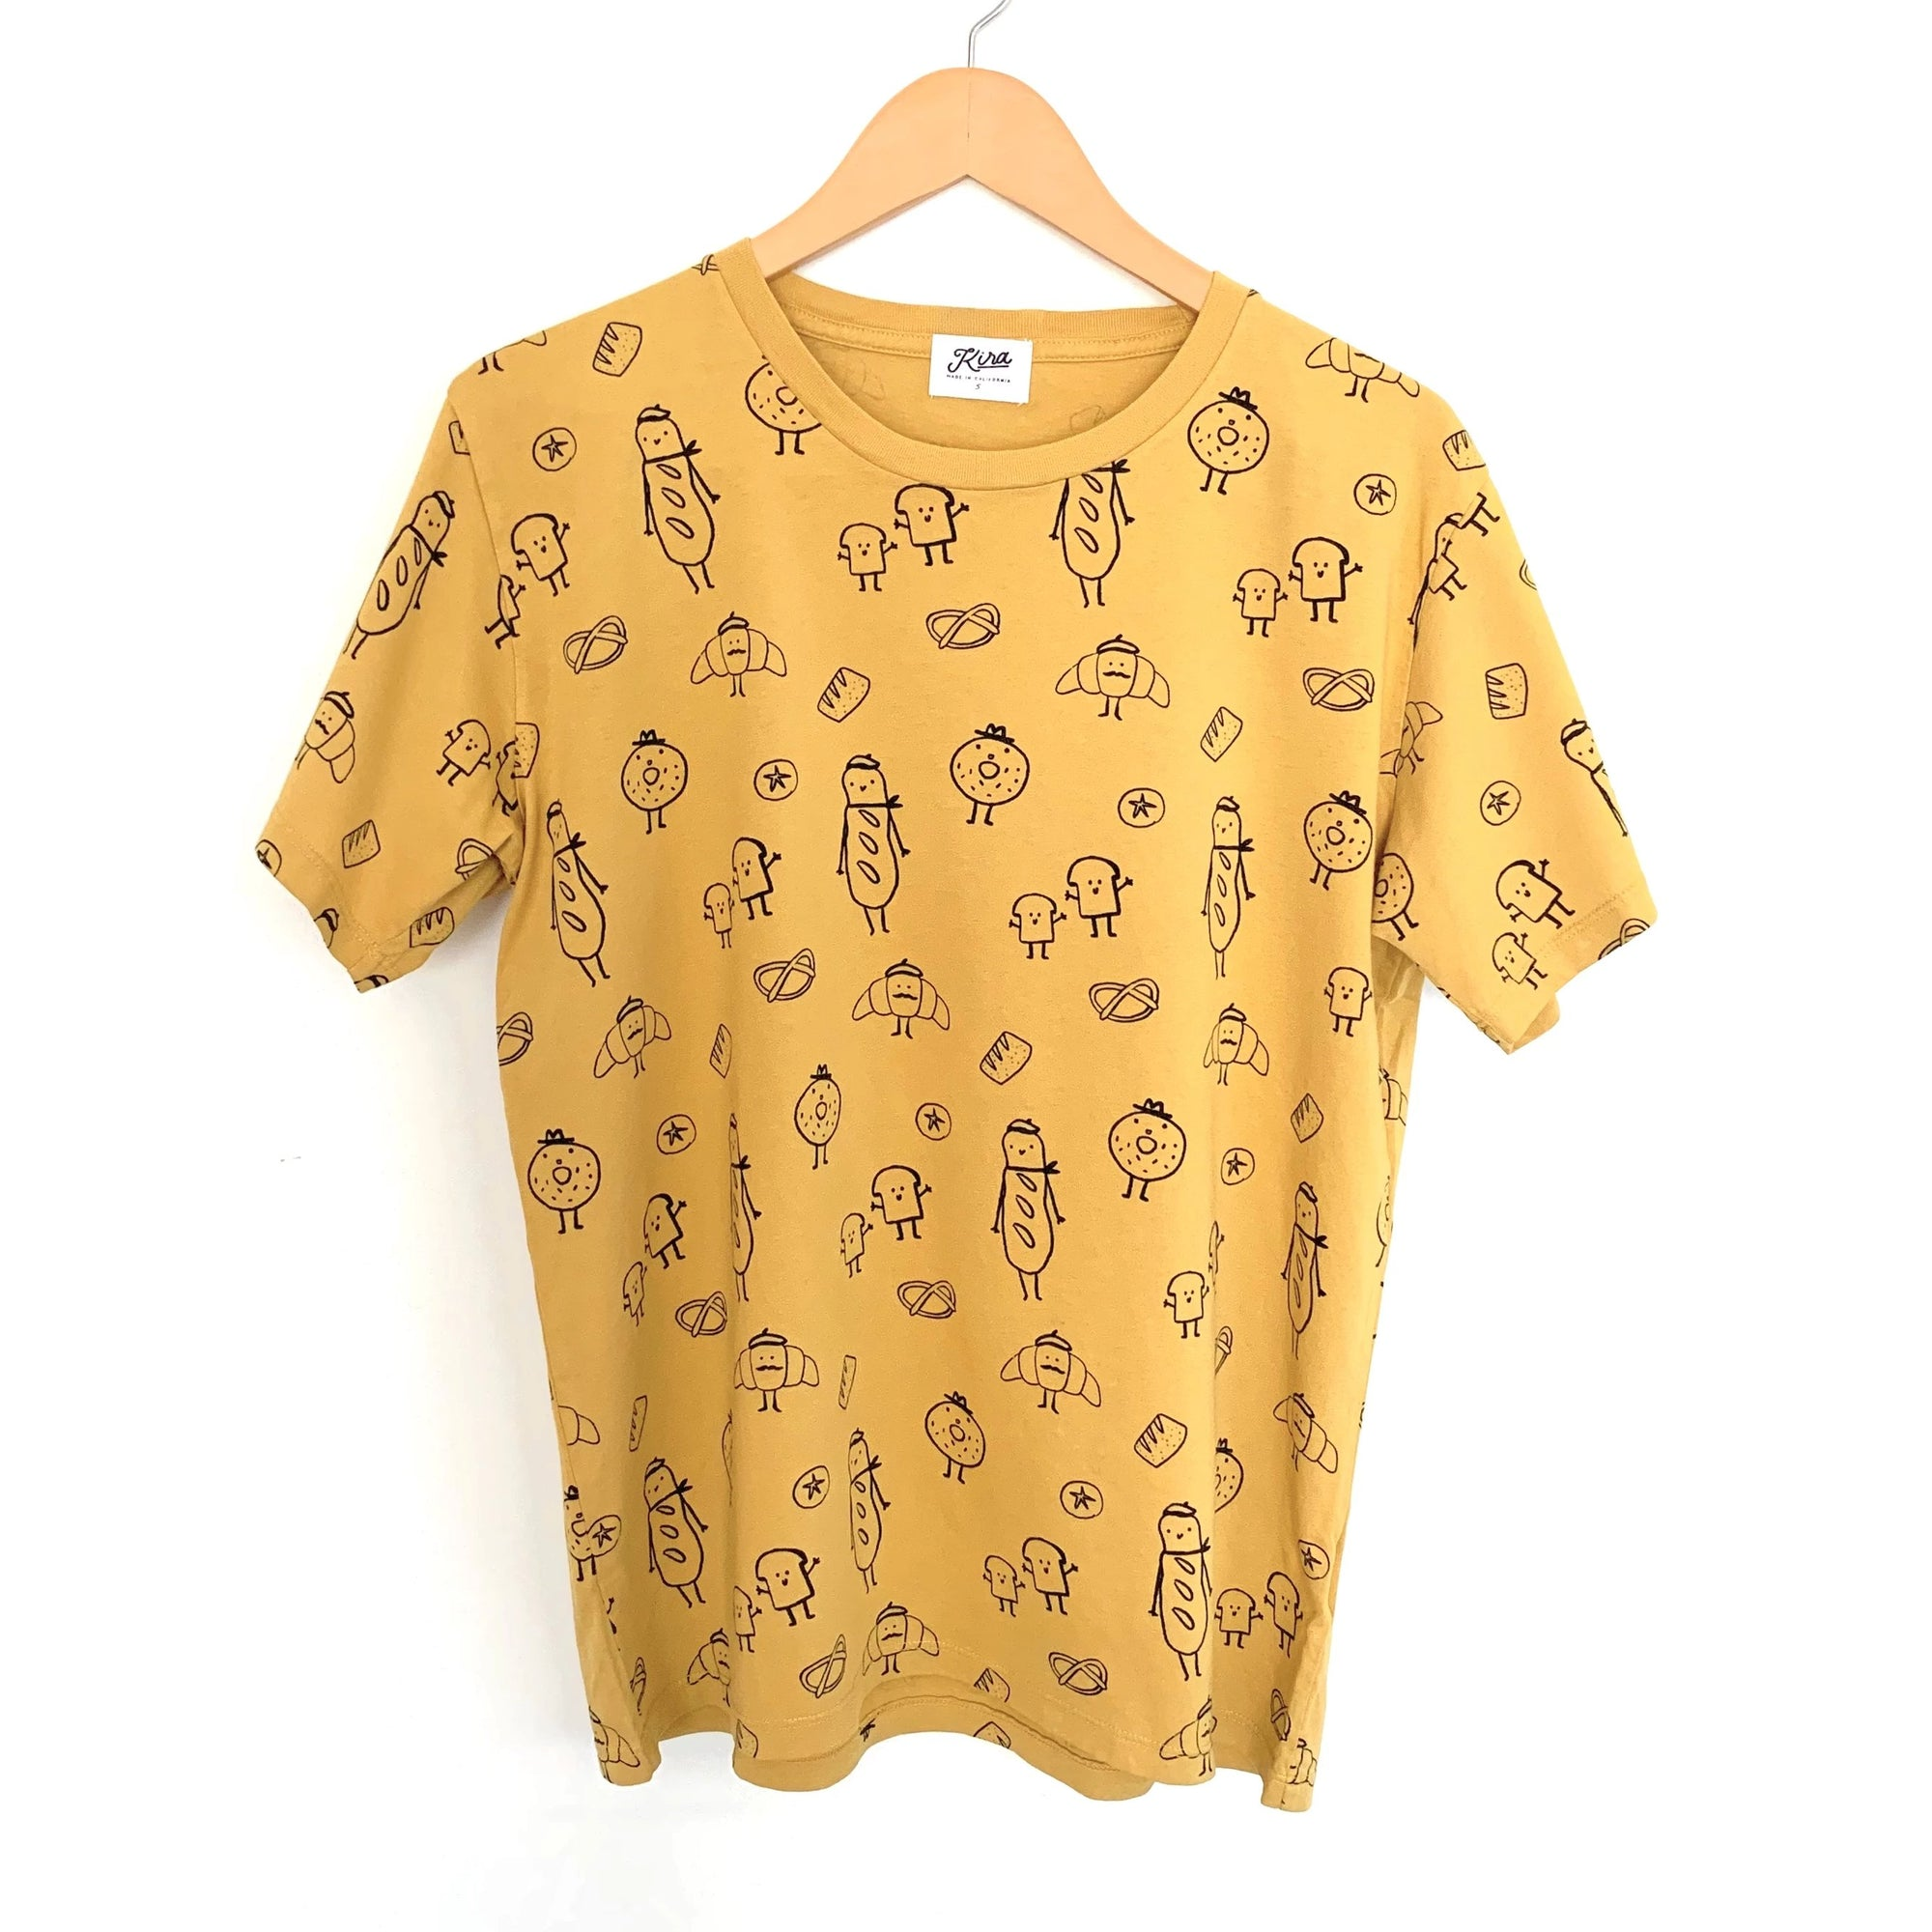 Bread Print T-shirt, Golden | Adult Unisex